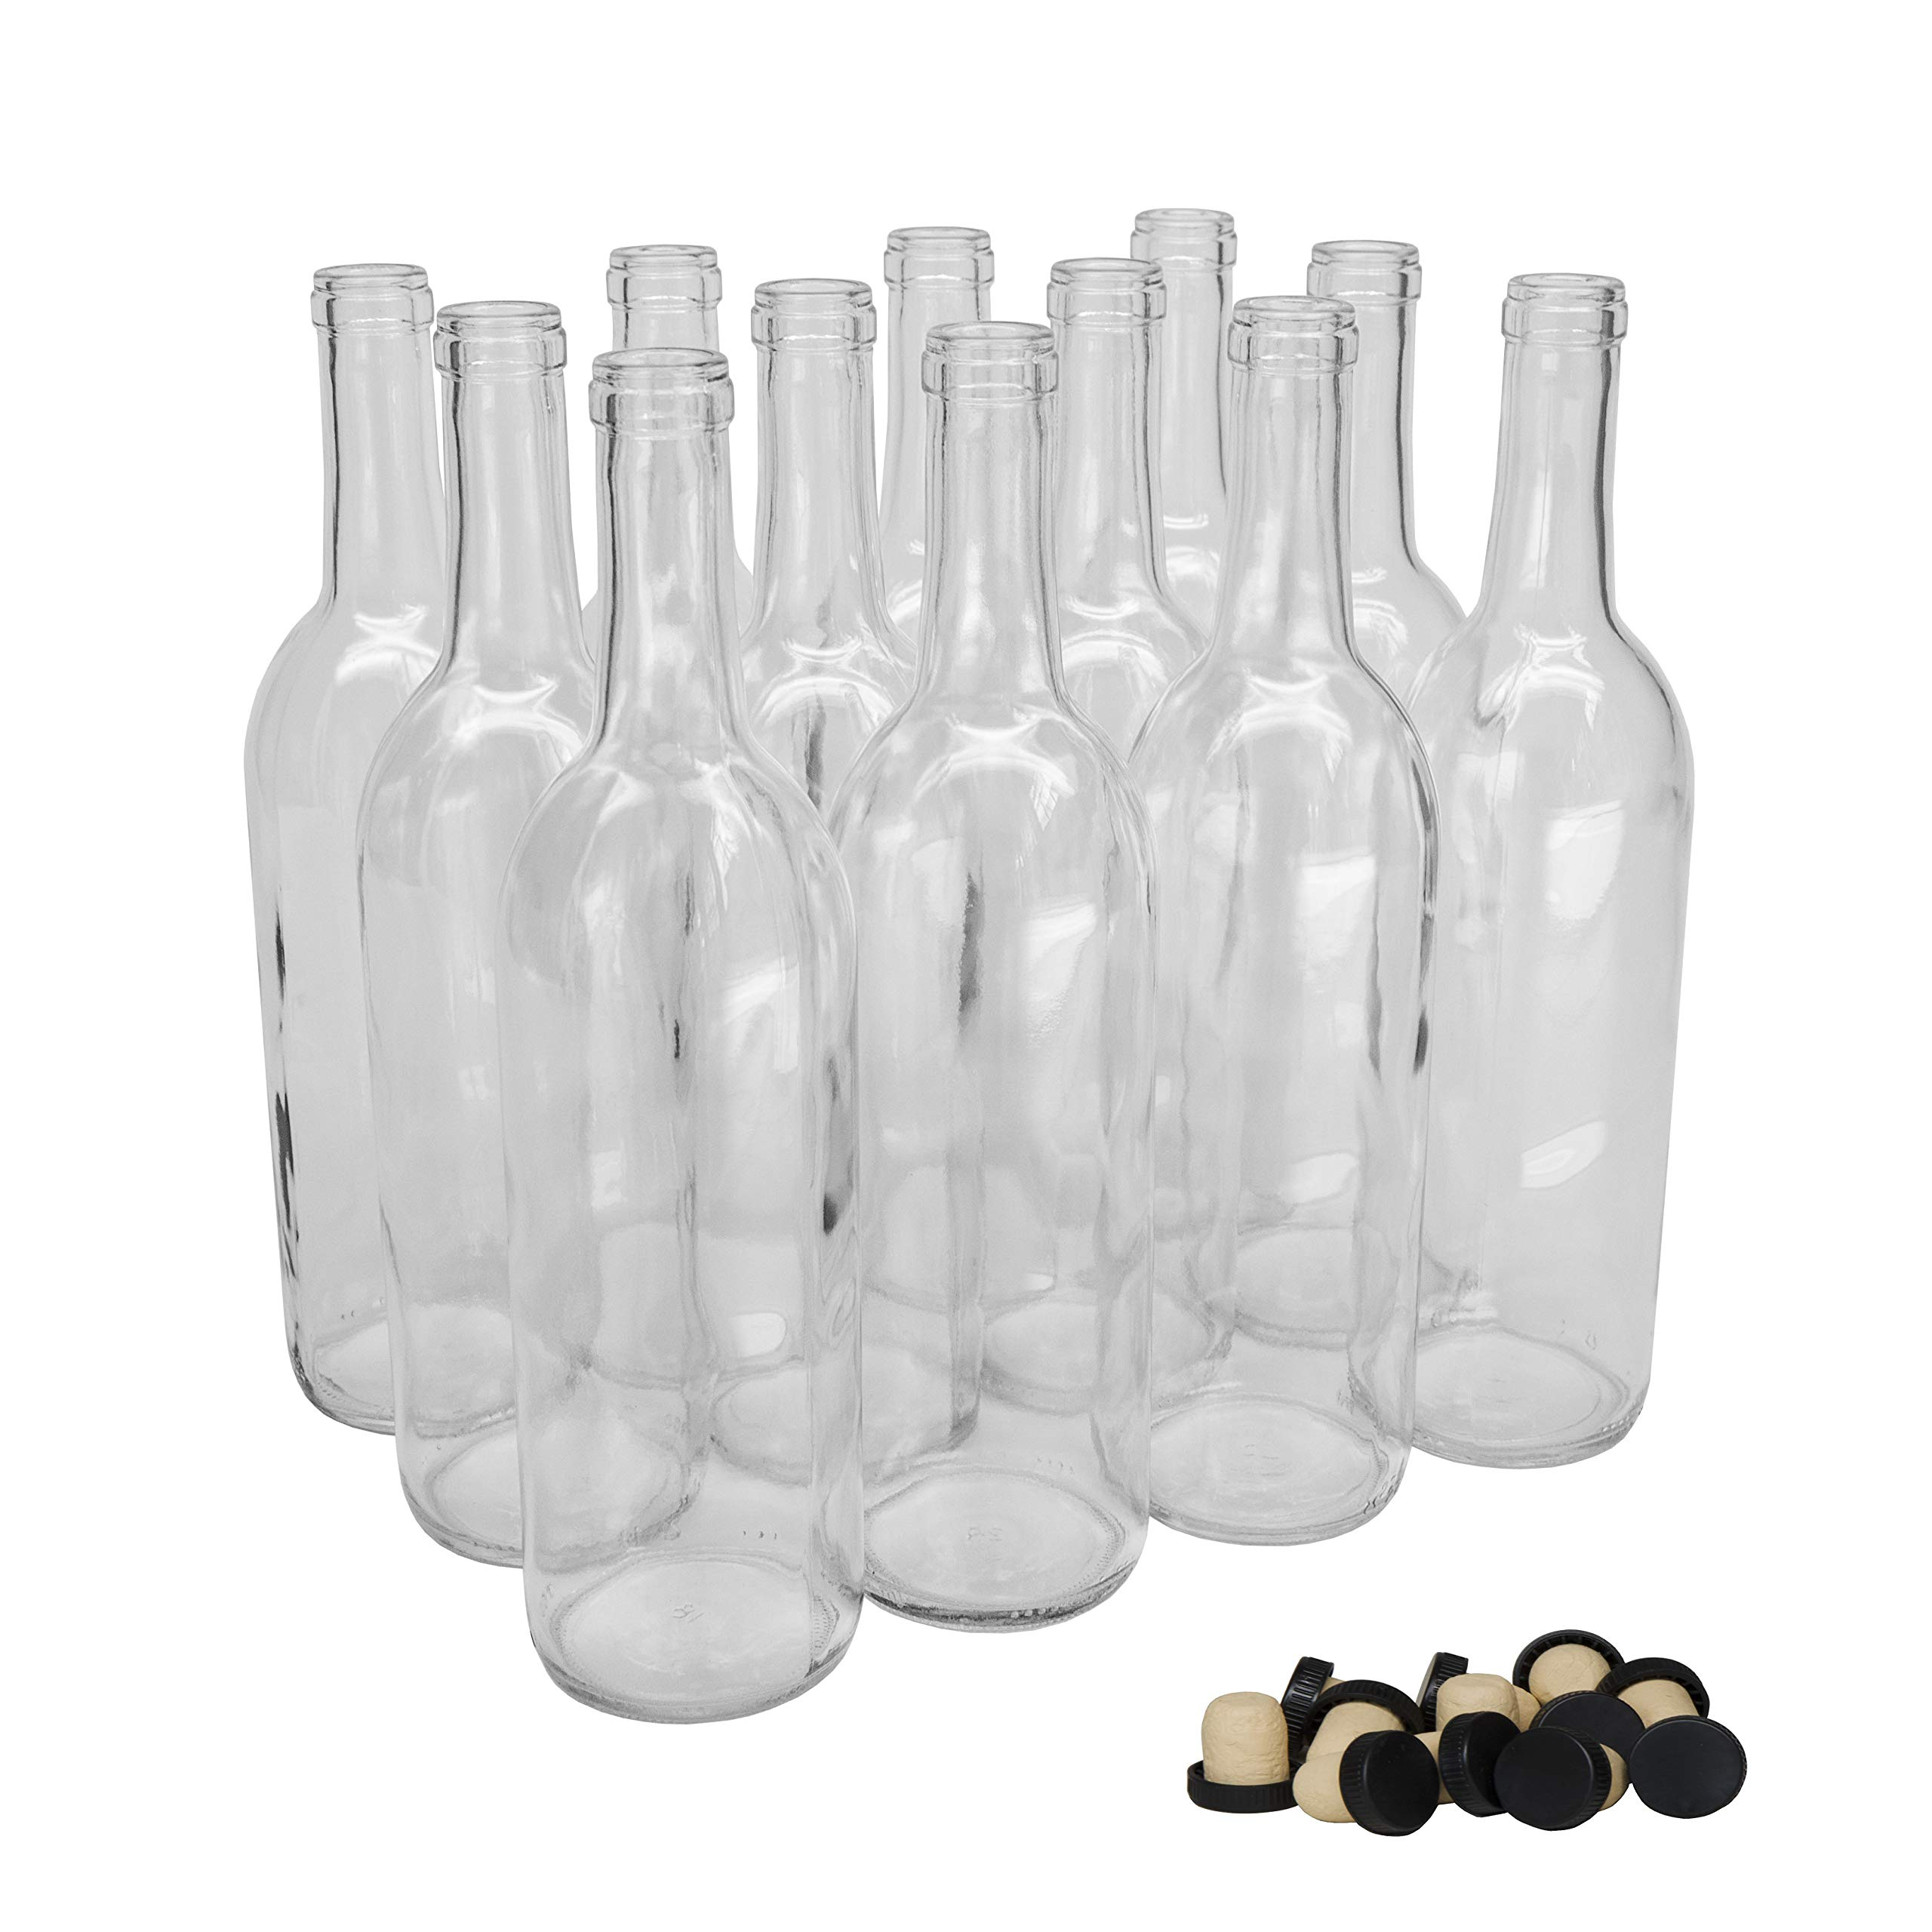 North Mountain Supply 750ml Clear Glass Bordeaux Wine Bottle Flat-Bottomed Cork Finish - with Tasting Corks - Case of 12 by North Mountain Supply